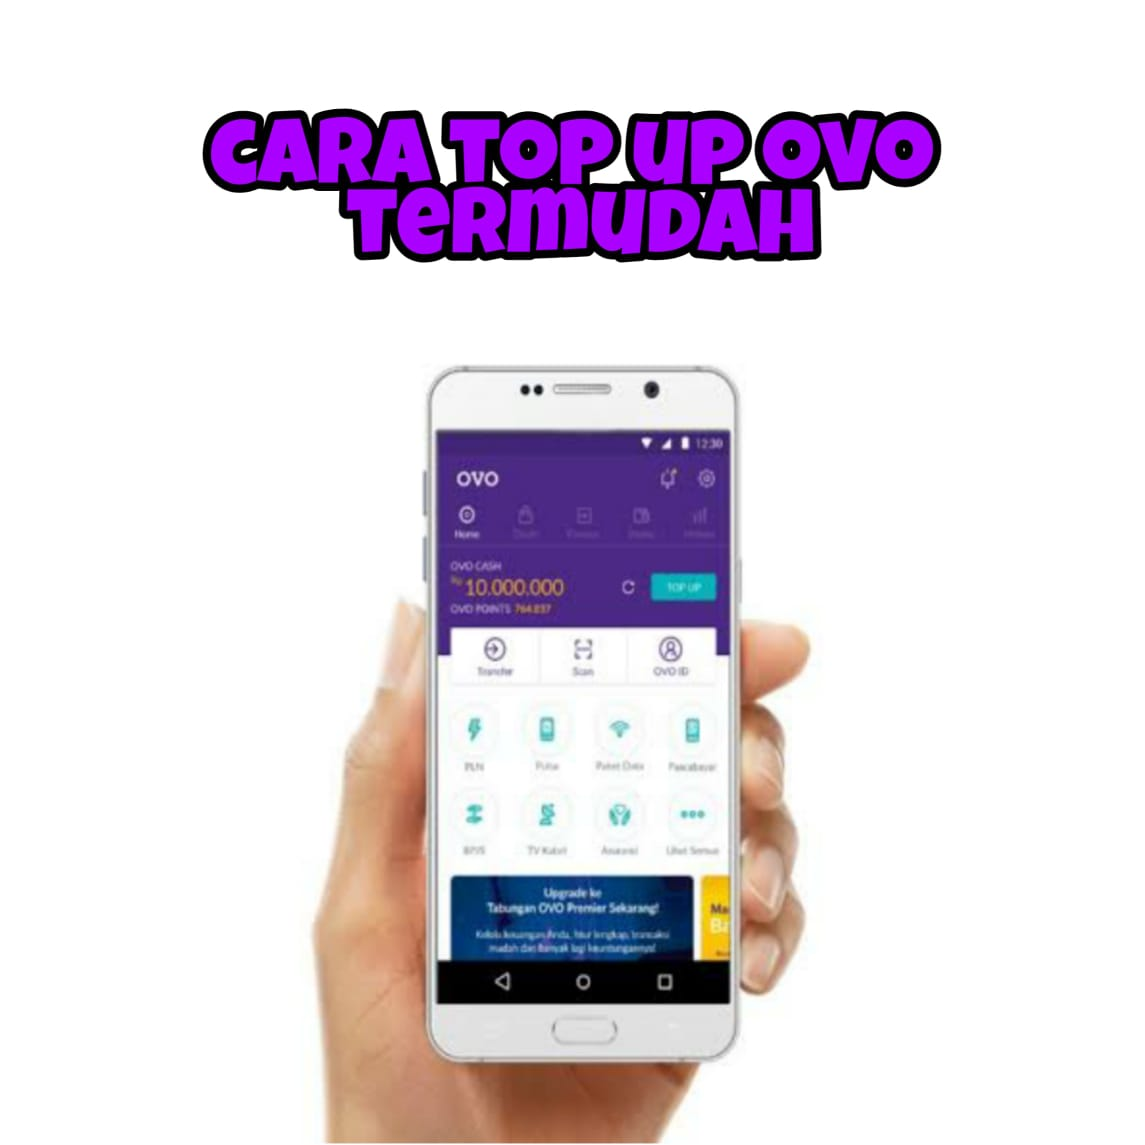 cara-top-up-saldo-ovo-termudah